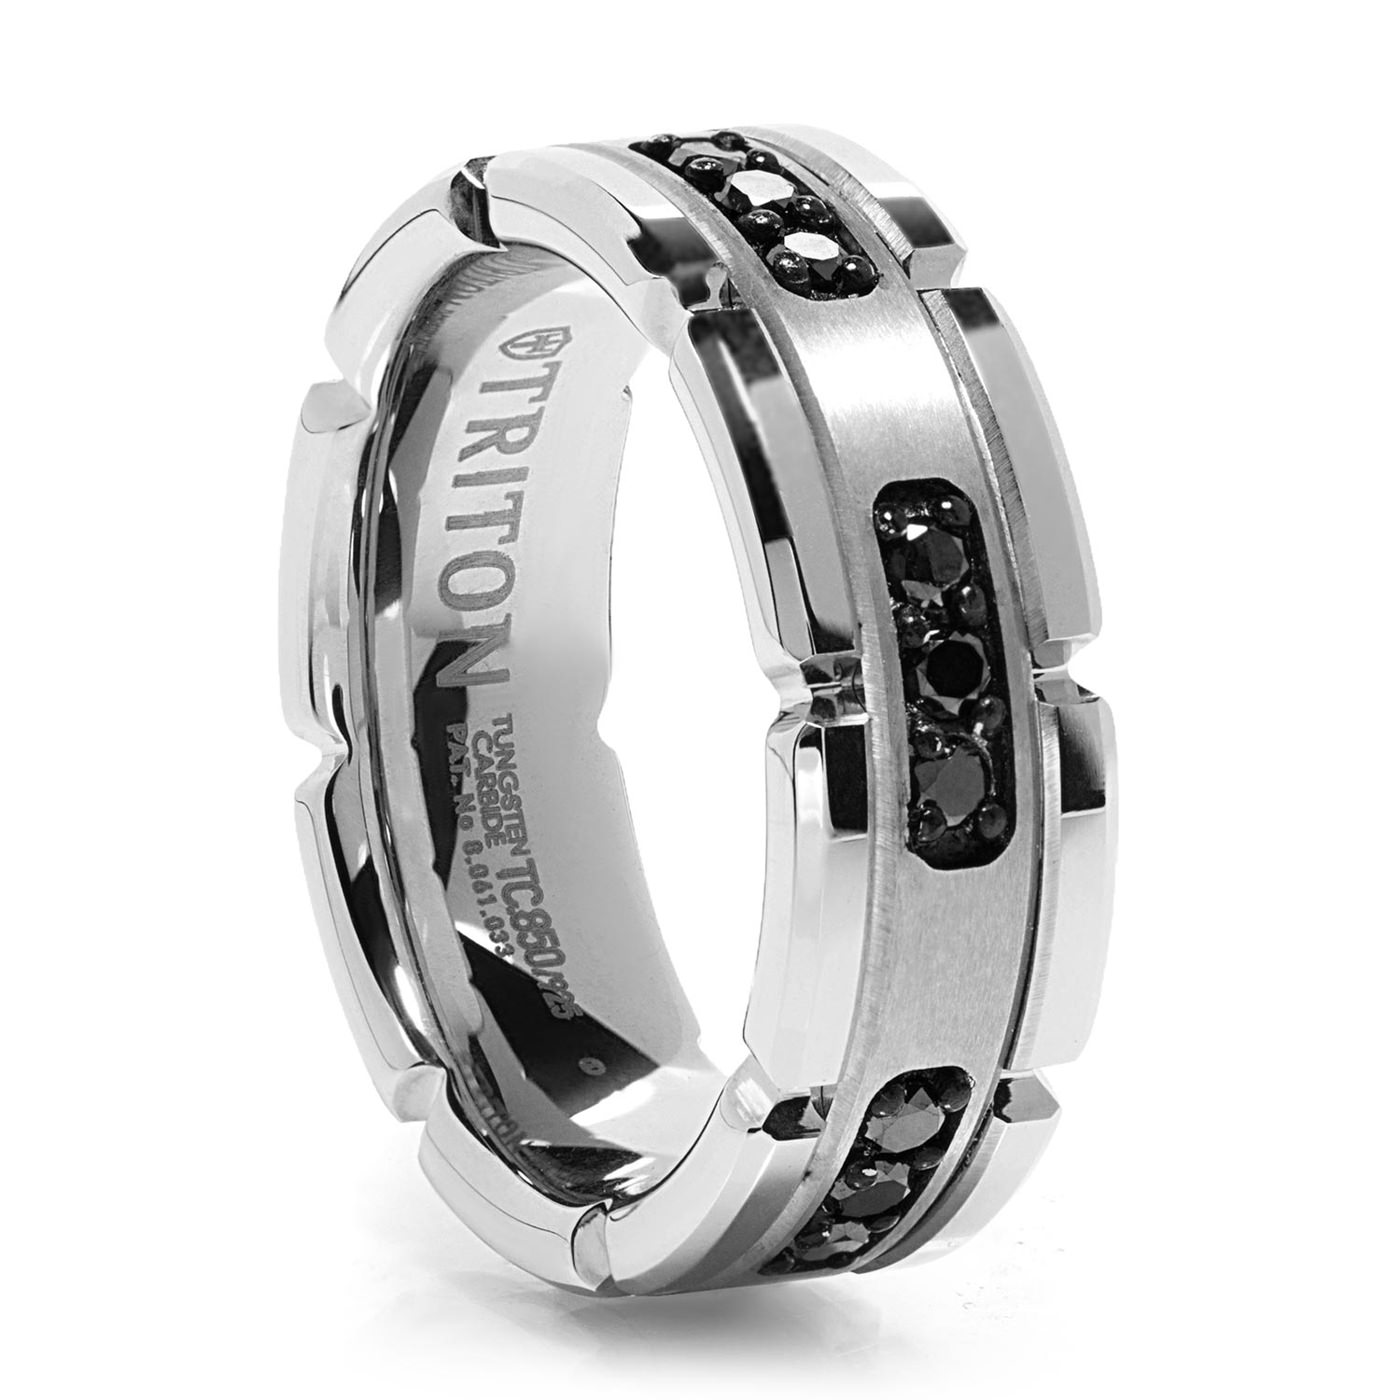 steel men movie lover rbvahvaplbqag finger designed stainless s jewelry titanium ring smooth the bands gifts wear wedding mens bague product rings fashion one black